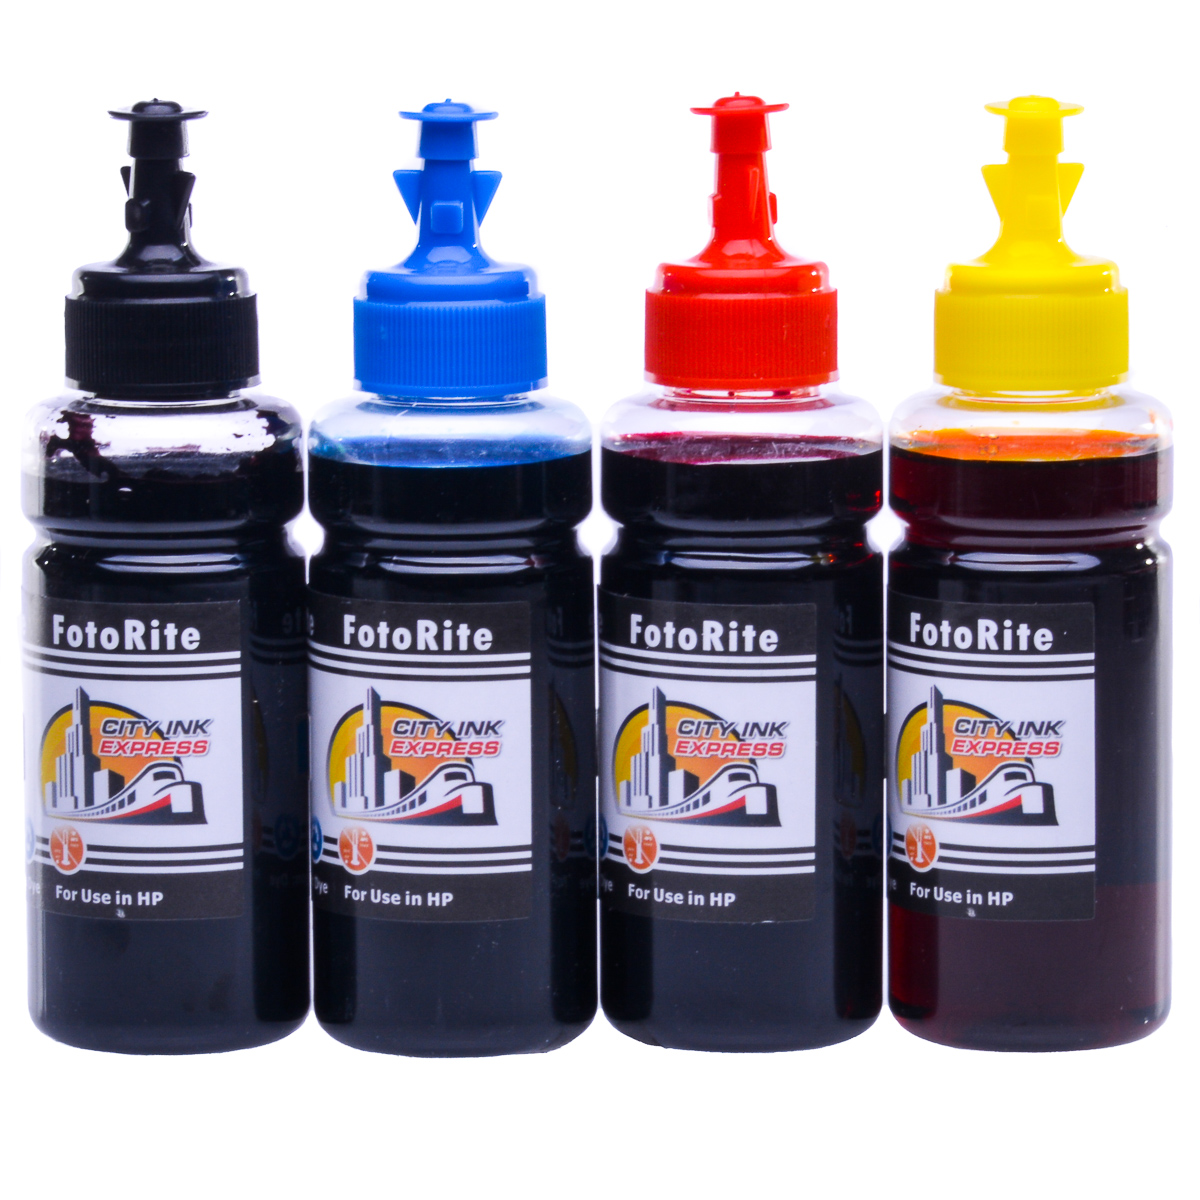 Cheap Multipack dye ink refill replaces HP Officejet 6515